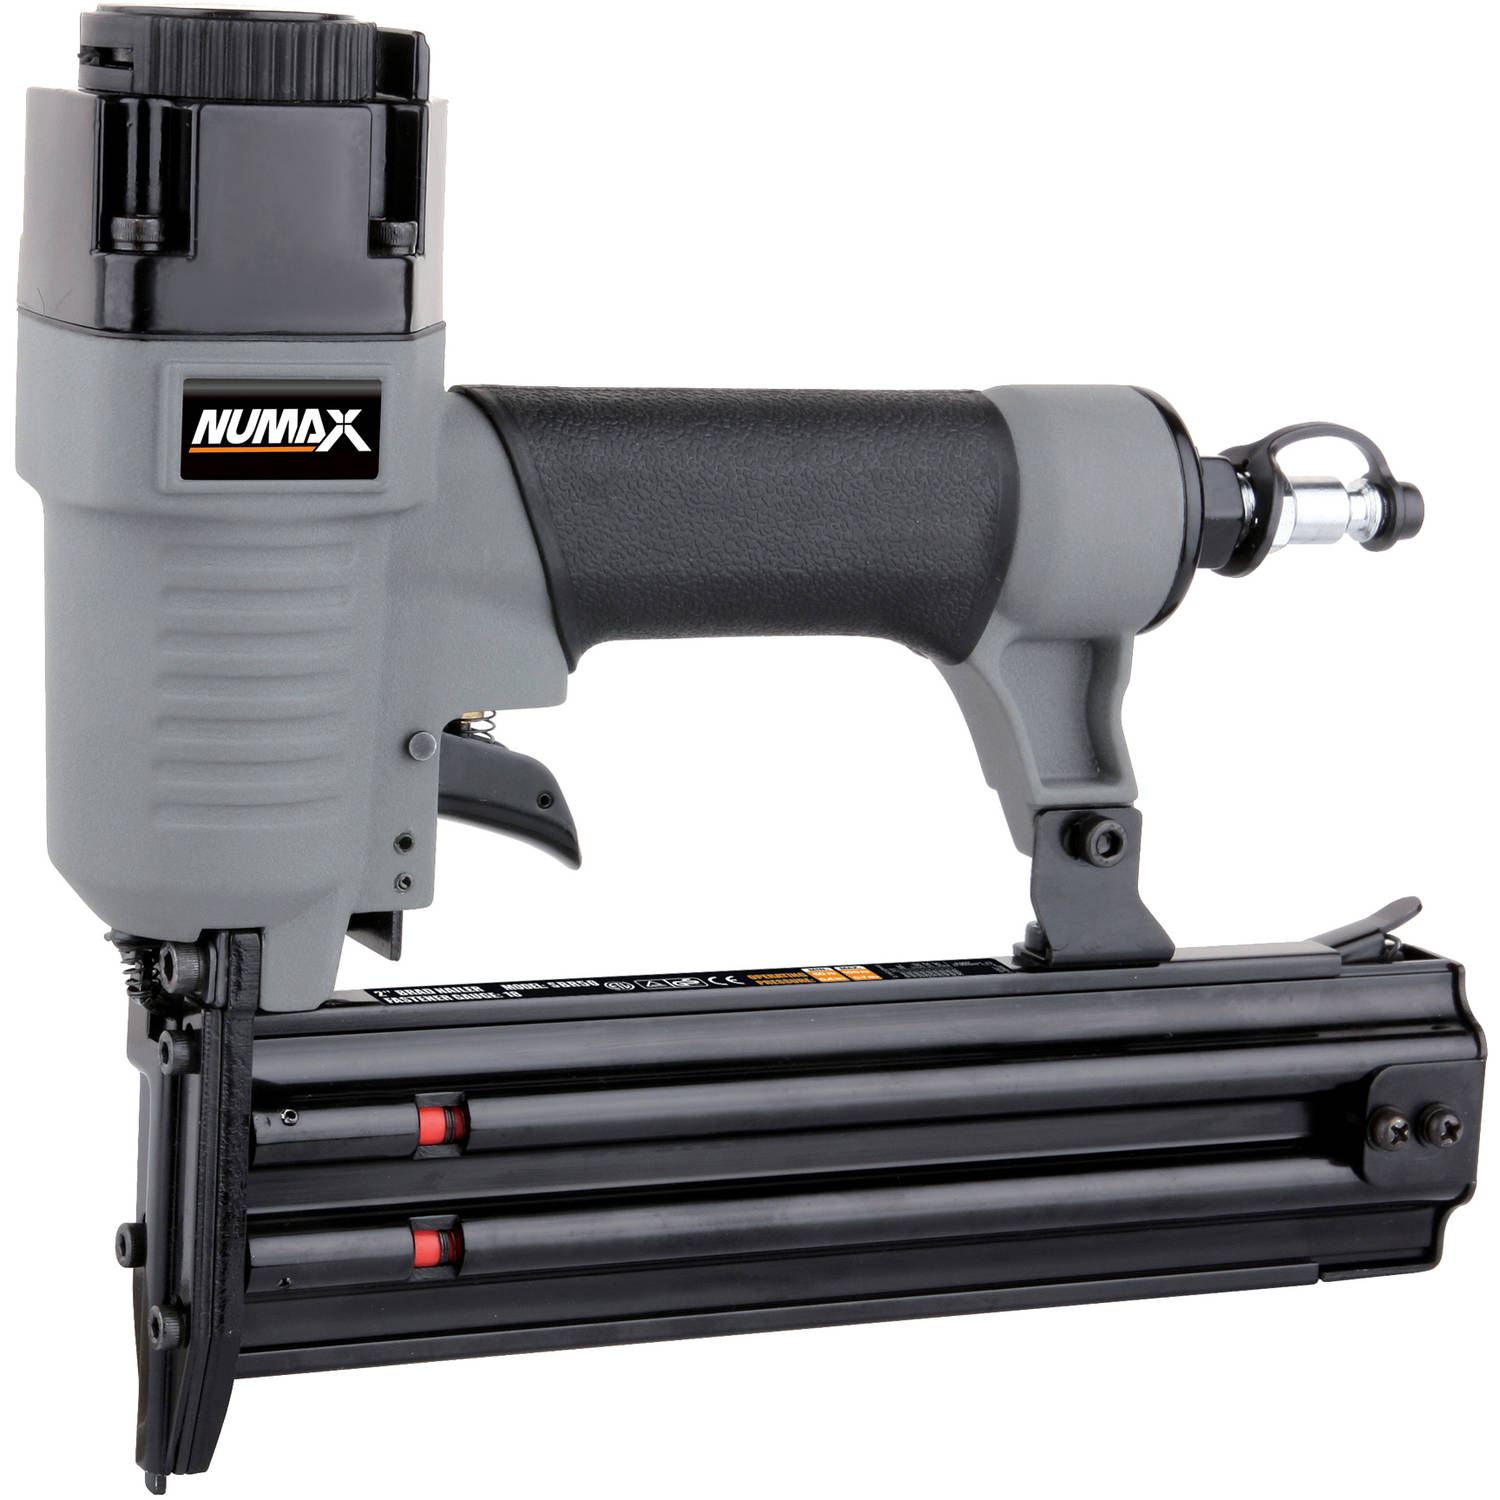 "NuMax SBR50 Pneumatic 18-Gauge 2"" Straight Brad Nailer"